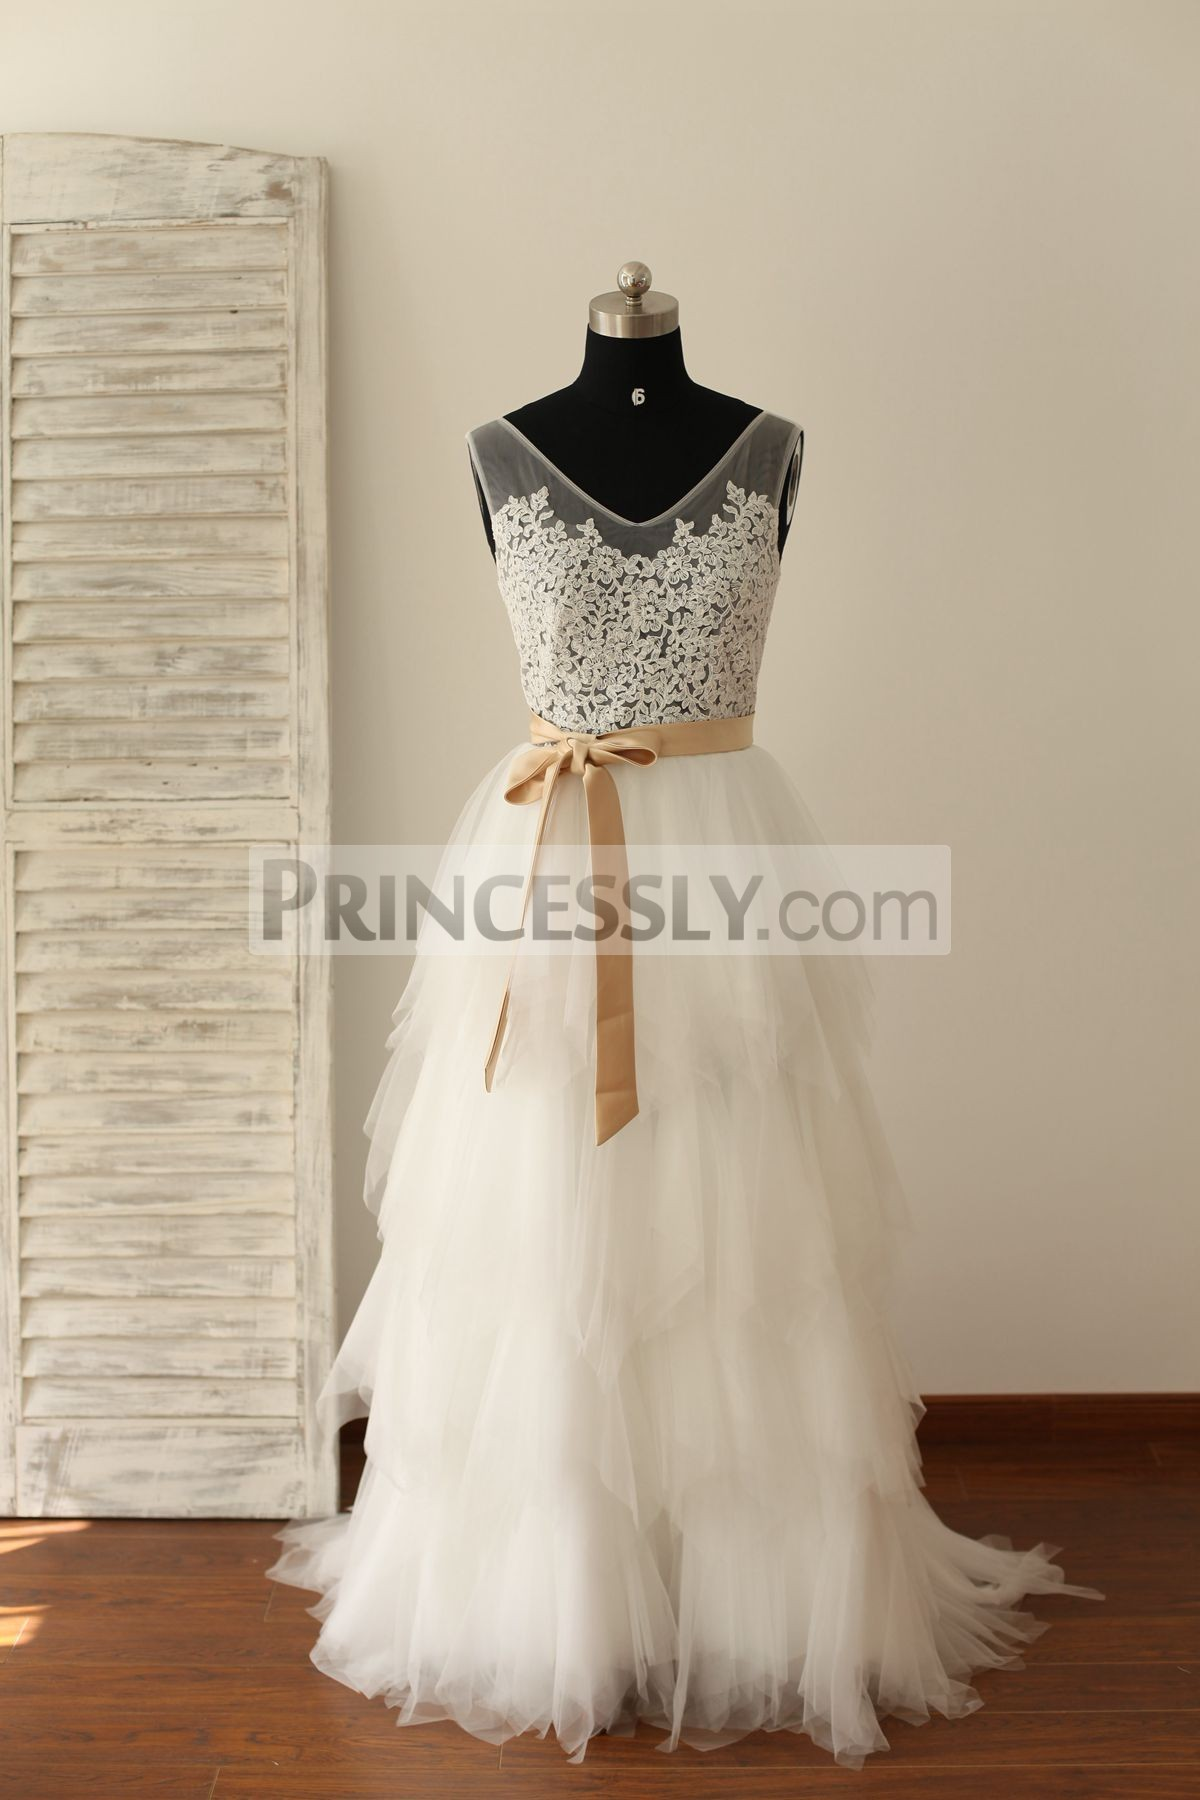 Princessly.com-K1000220-Sheer See Though Ivory Lace Tulle V Back Wedding Dress with champagne sash-31